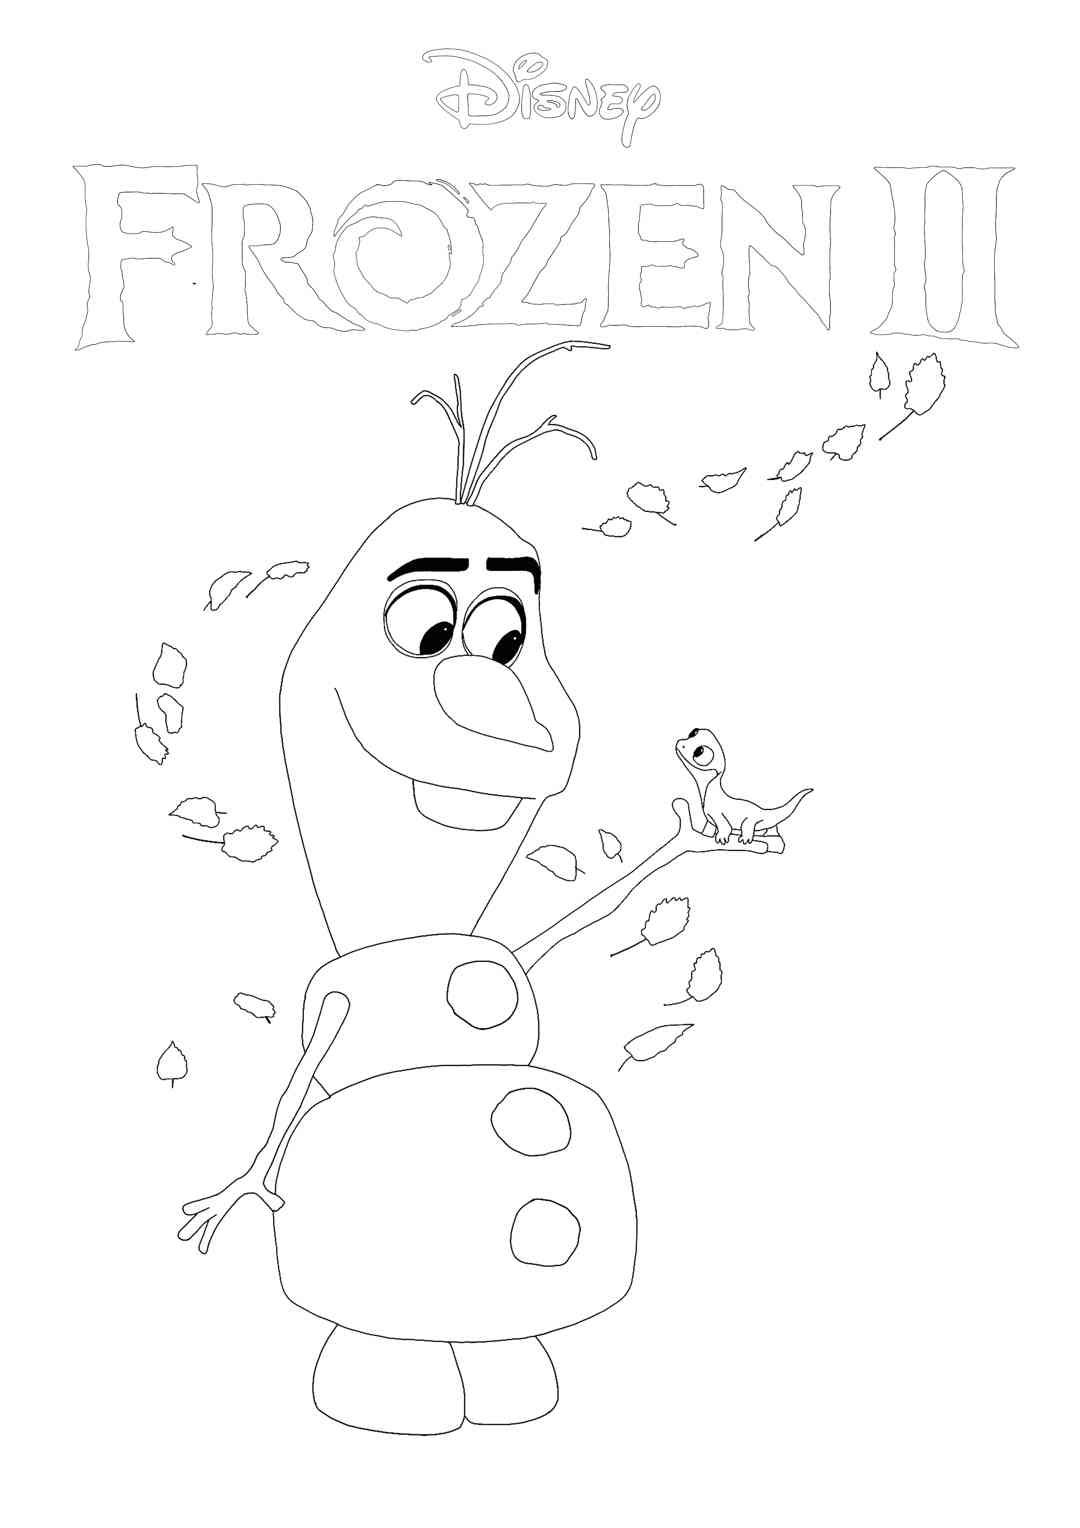 Frozen 23 - Olaf and Bruni coloring page  Frozen coloring, Disney